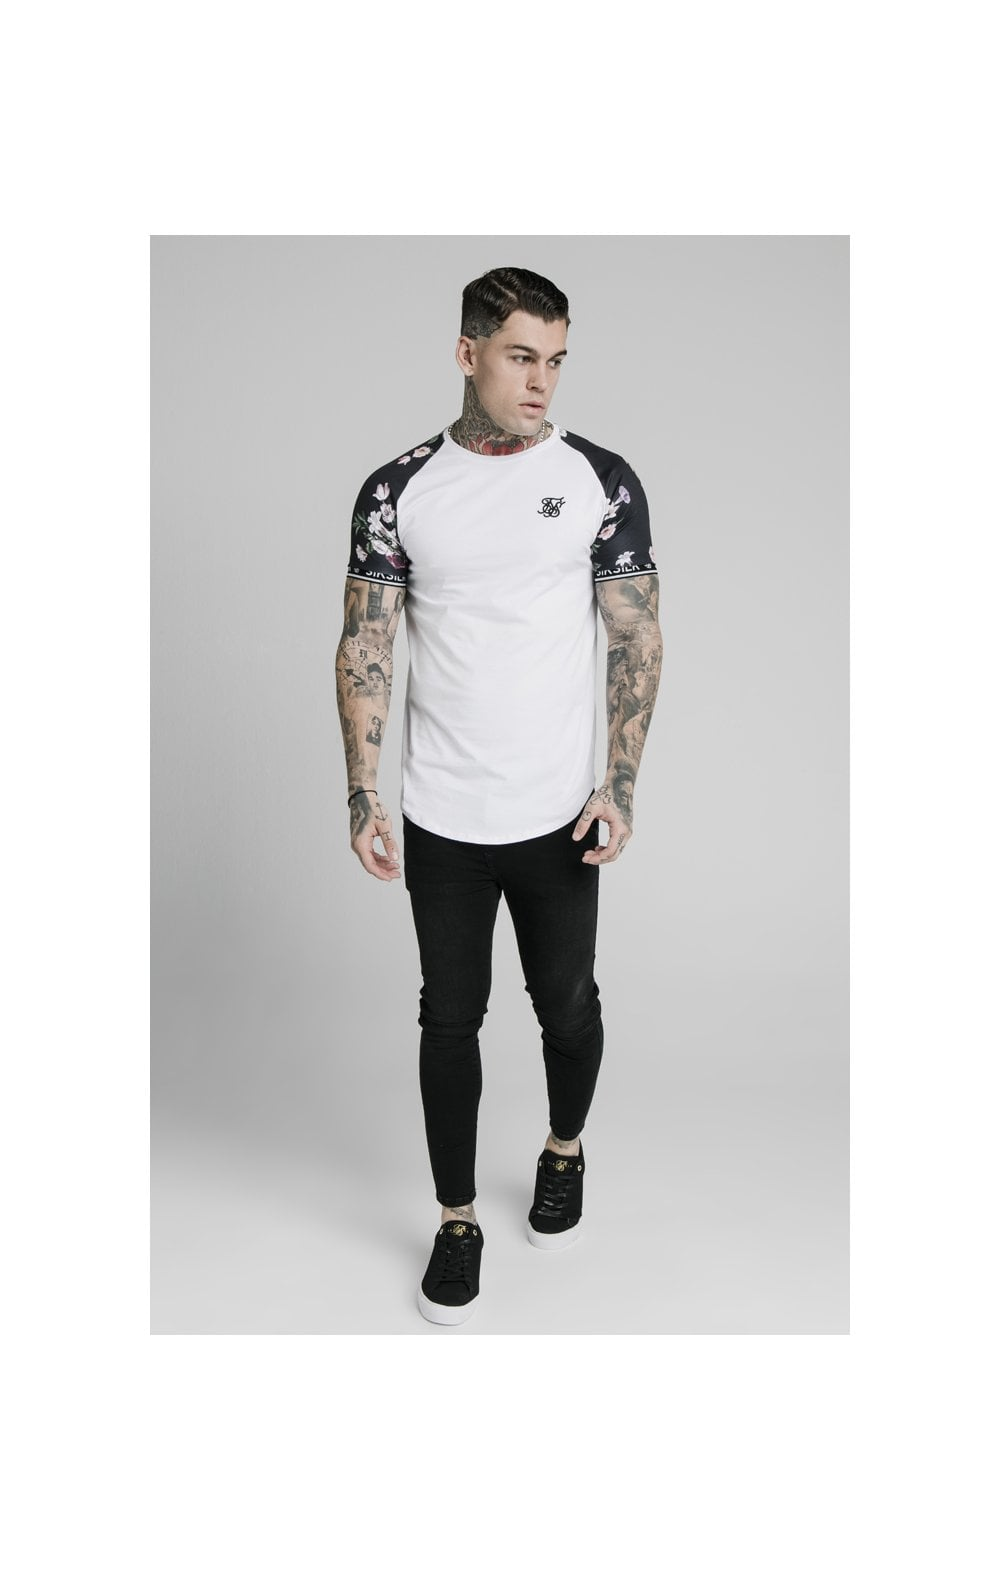 SikSilk S/S Prestige Floral Inset Tech Tee - White (1)